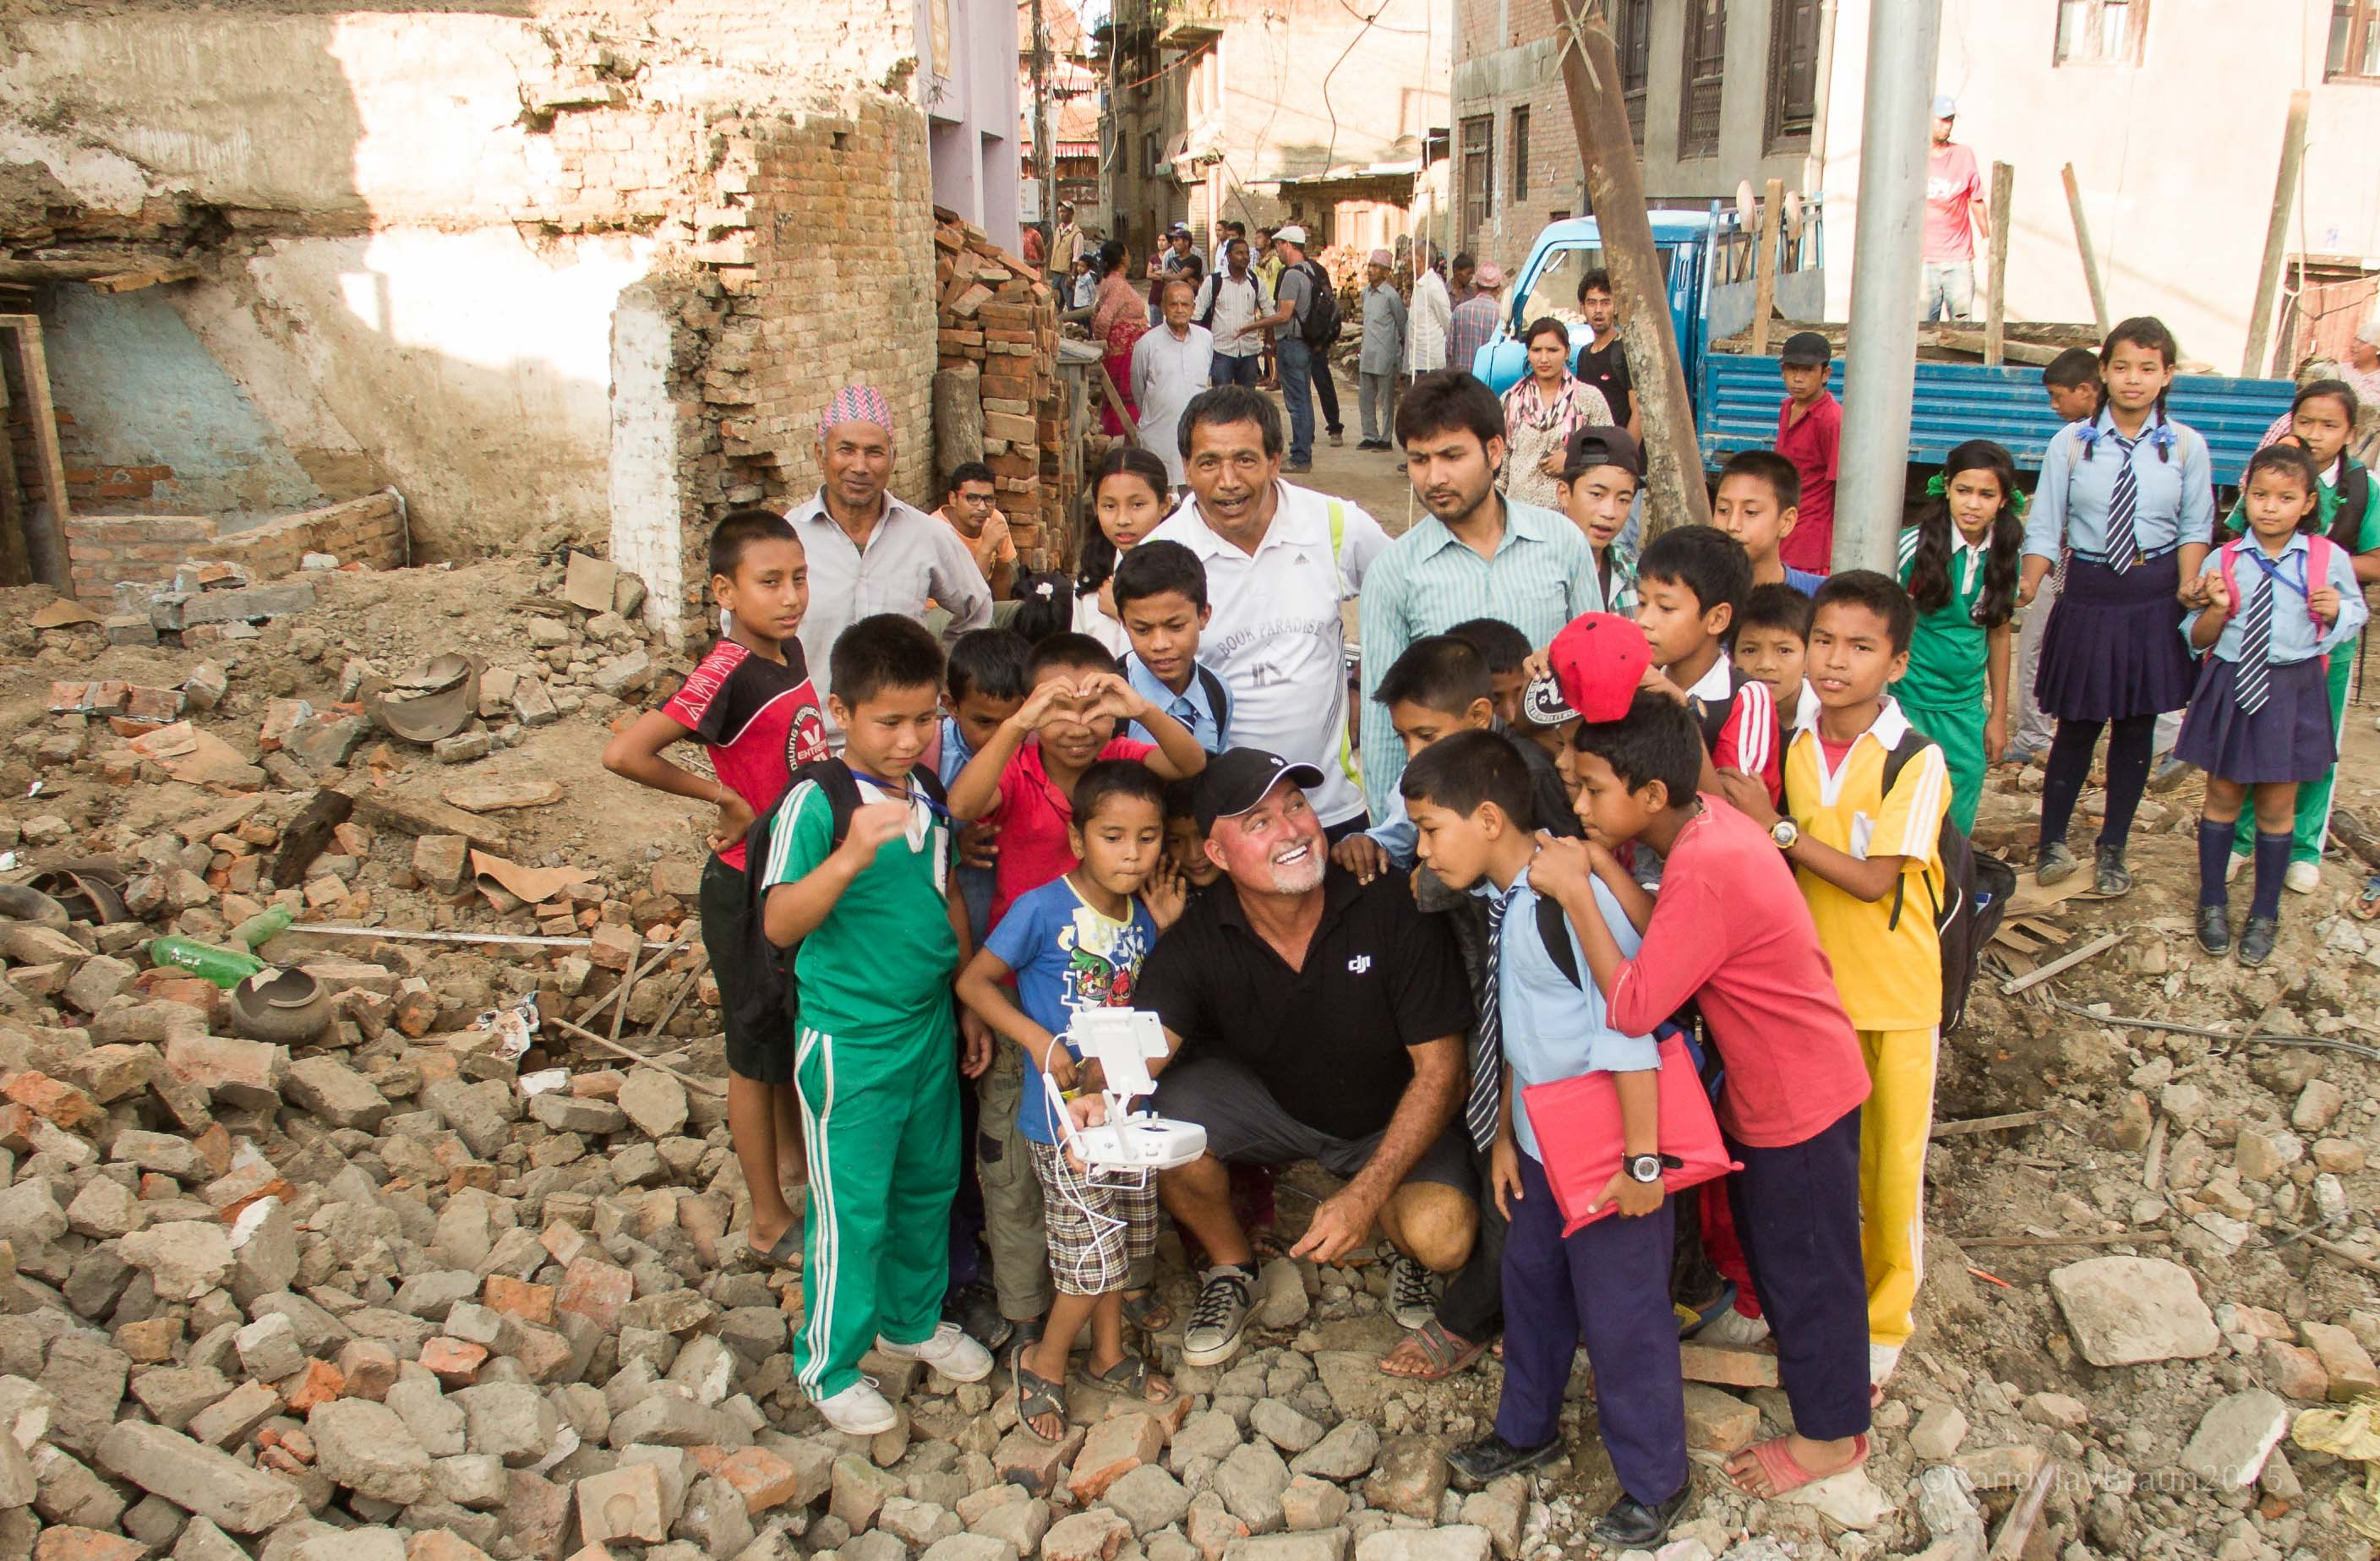 Showing Nepalise children Pix4Dmapper